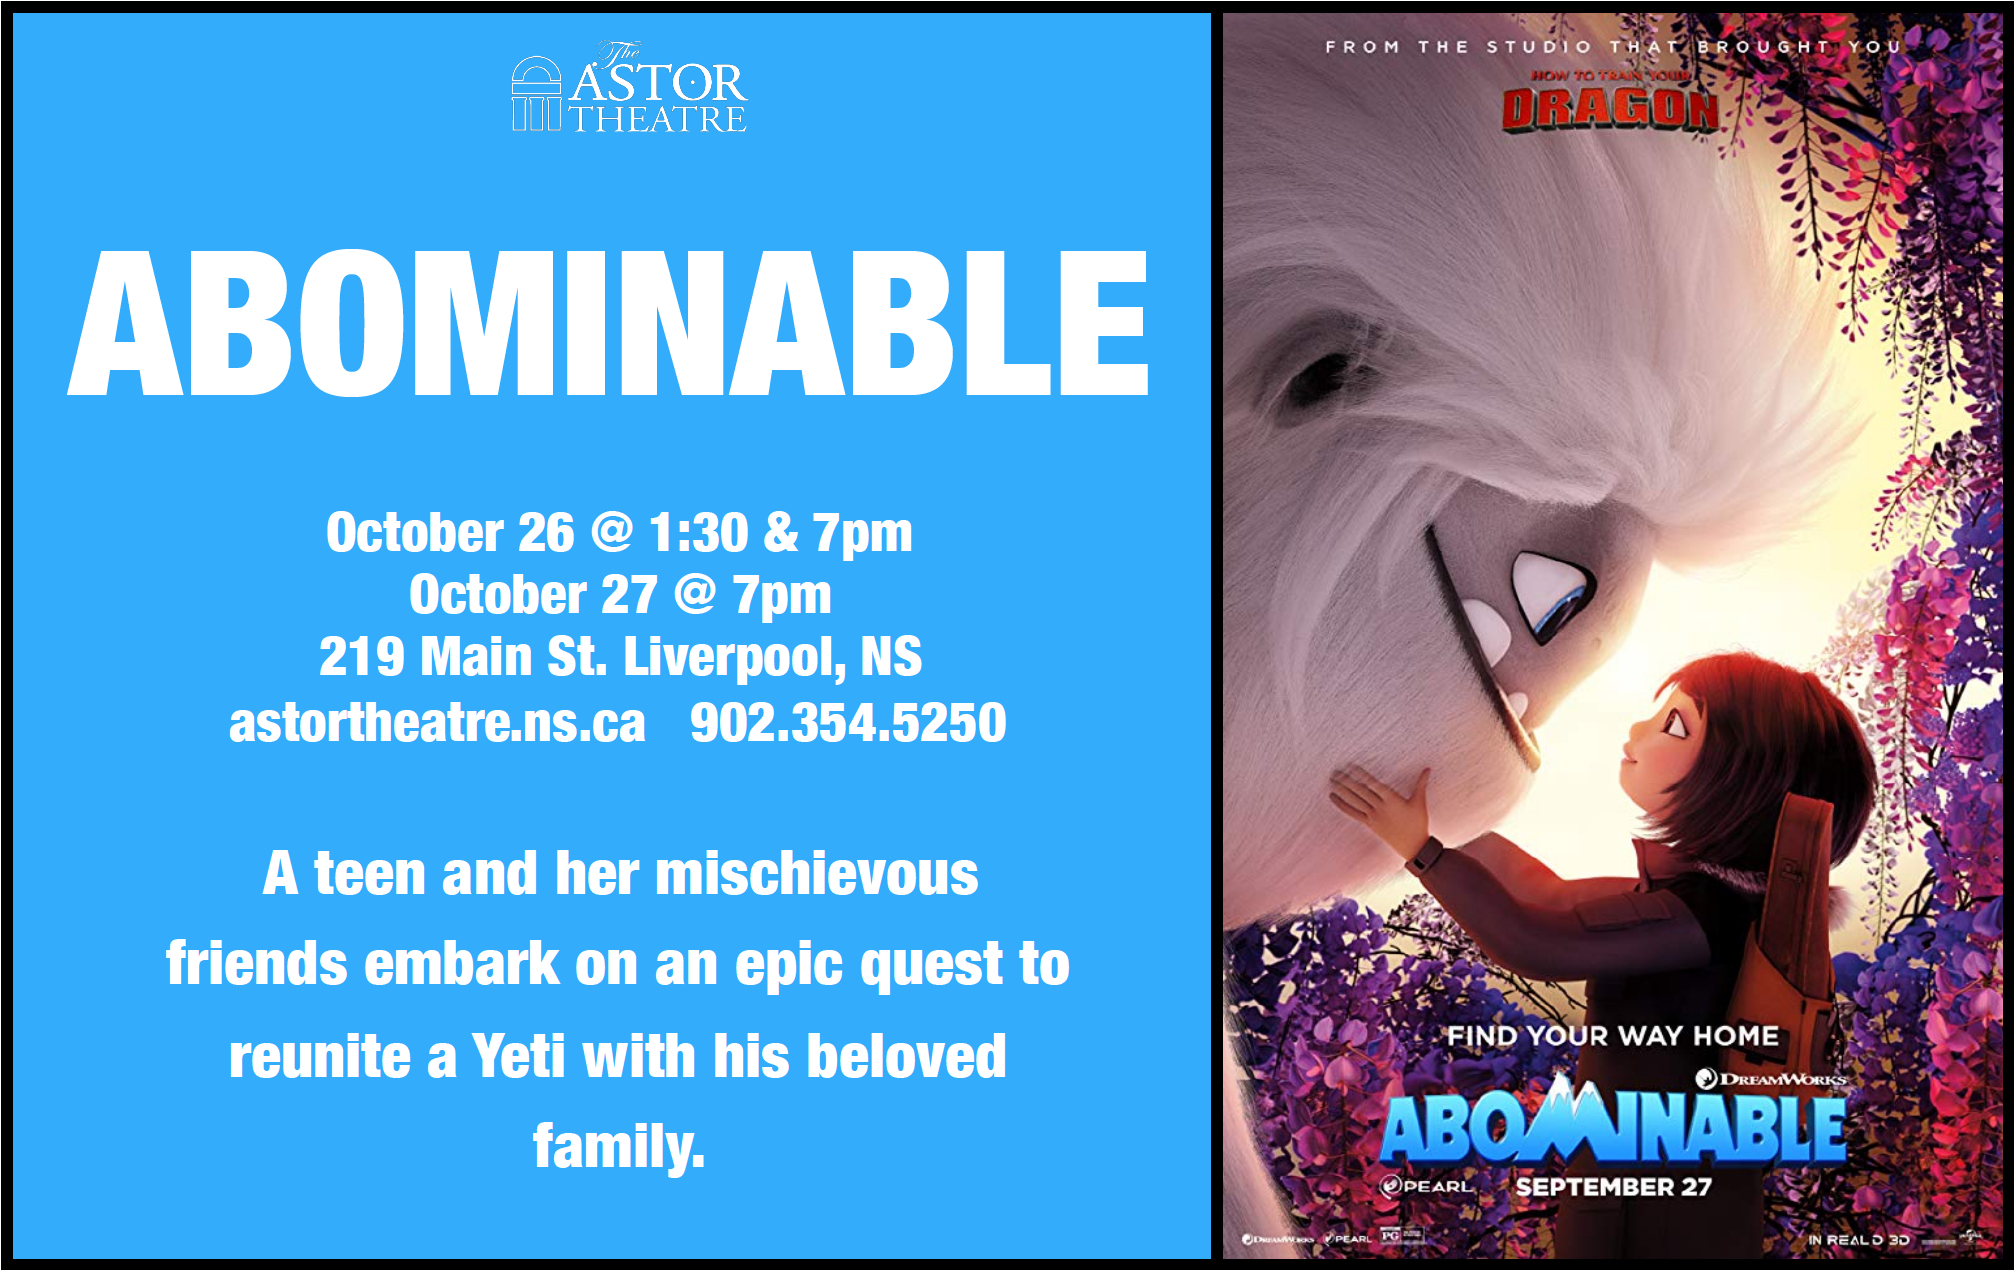 Abominable - Oct.26 @ 1:30 & 7pm, Oct.27 @ 7pm @ Astor Theatre